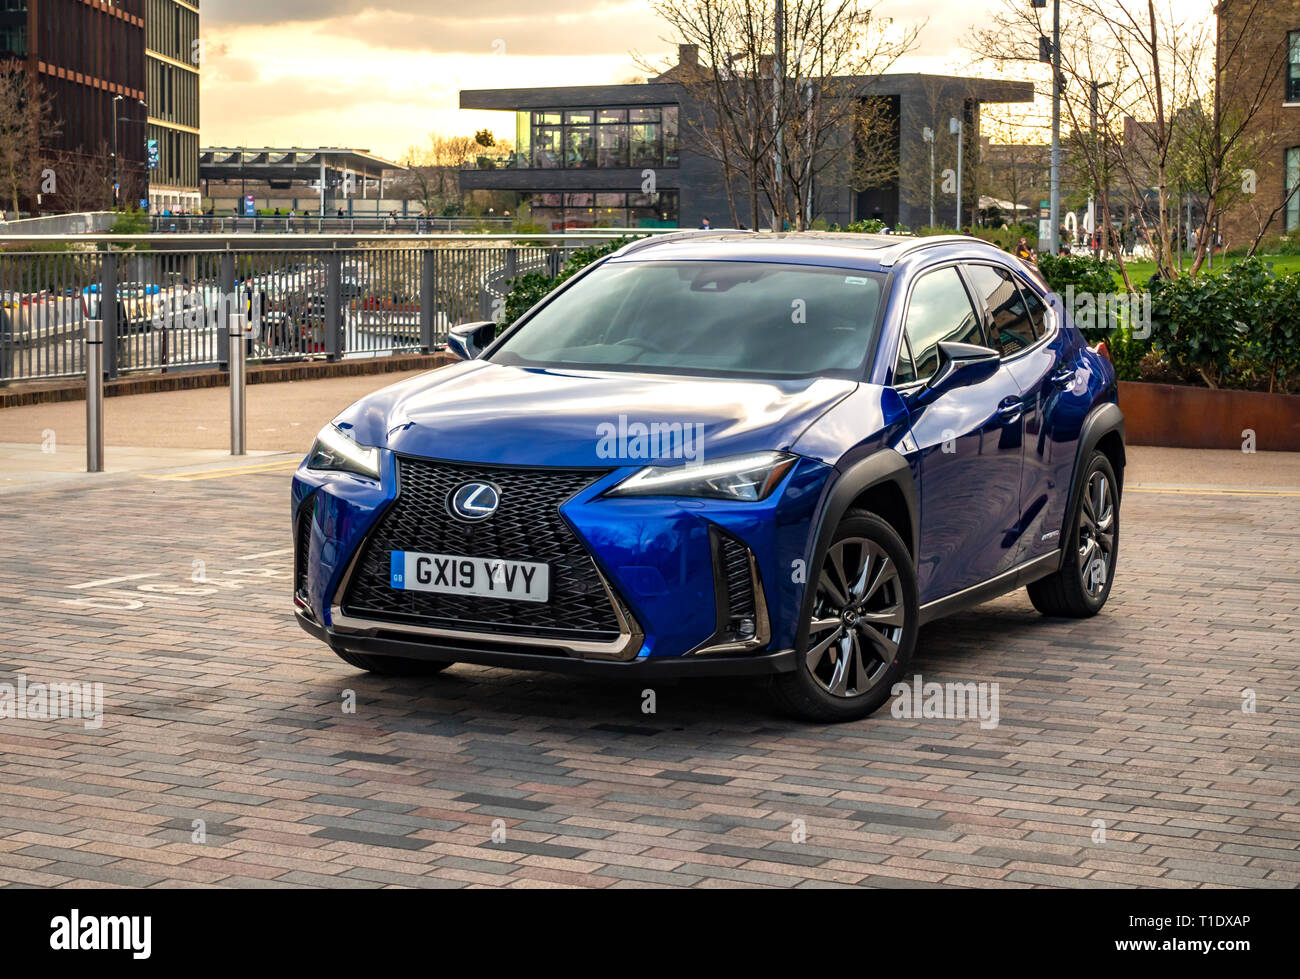 Car front view of a Blue brand new released The Lexus UX high-riding soft-roader car parked in Kings Cross, London - Stock Image